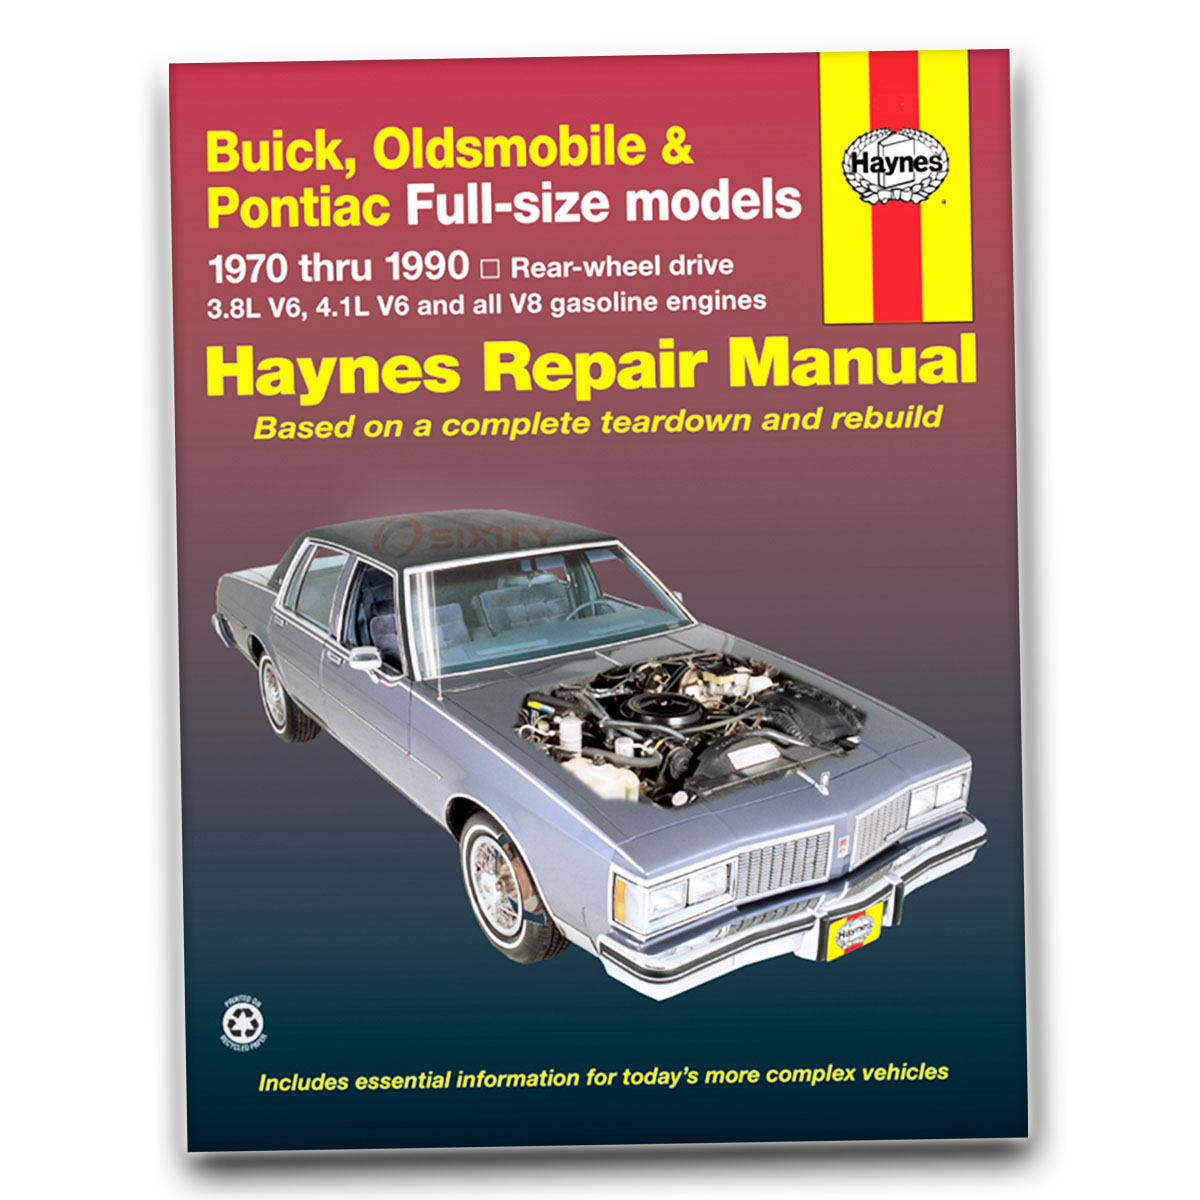 oldsmobile 98 haynes repair manual regency luxury base brougham shop rh ebay com Oldsmobile 88 1940 Oldsmobile